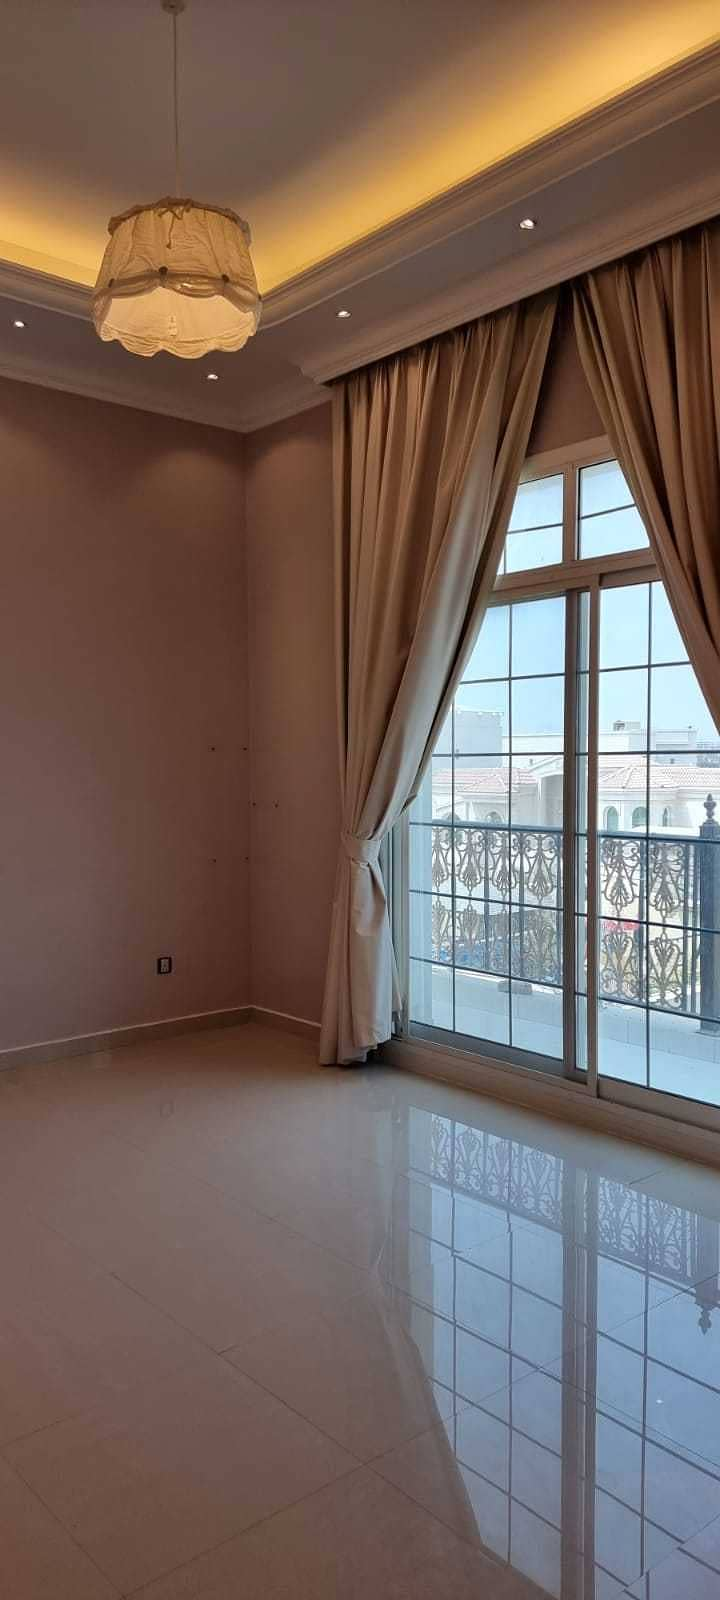 Luxury villa for rent in khawaneej first ( 6bed + hall + living + dining +